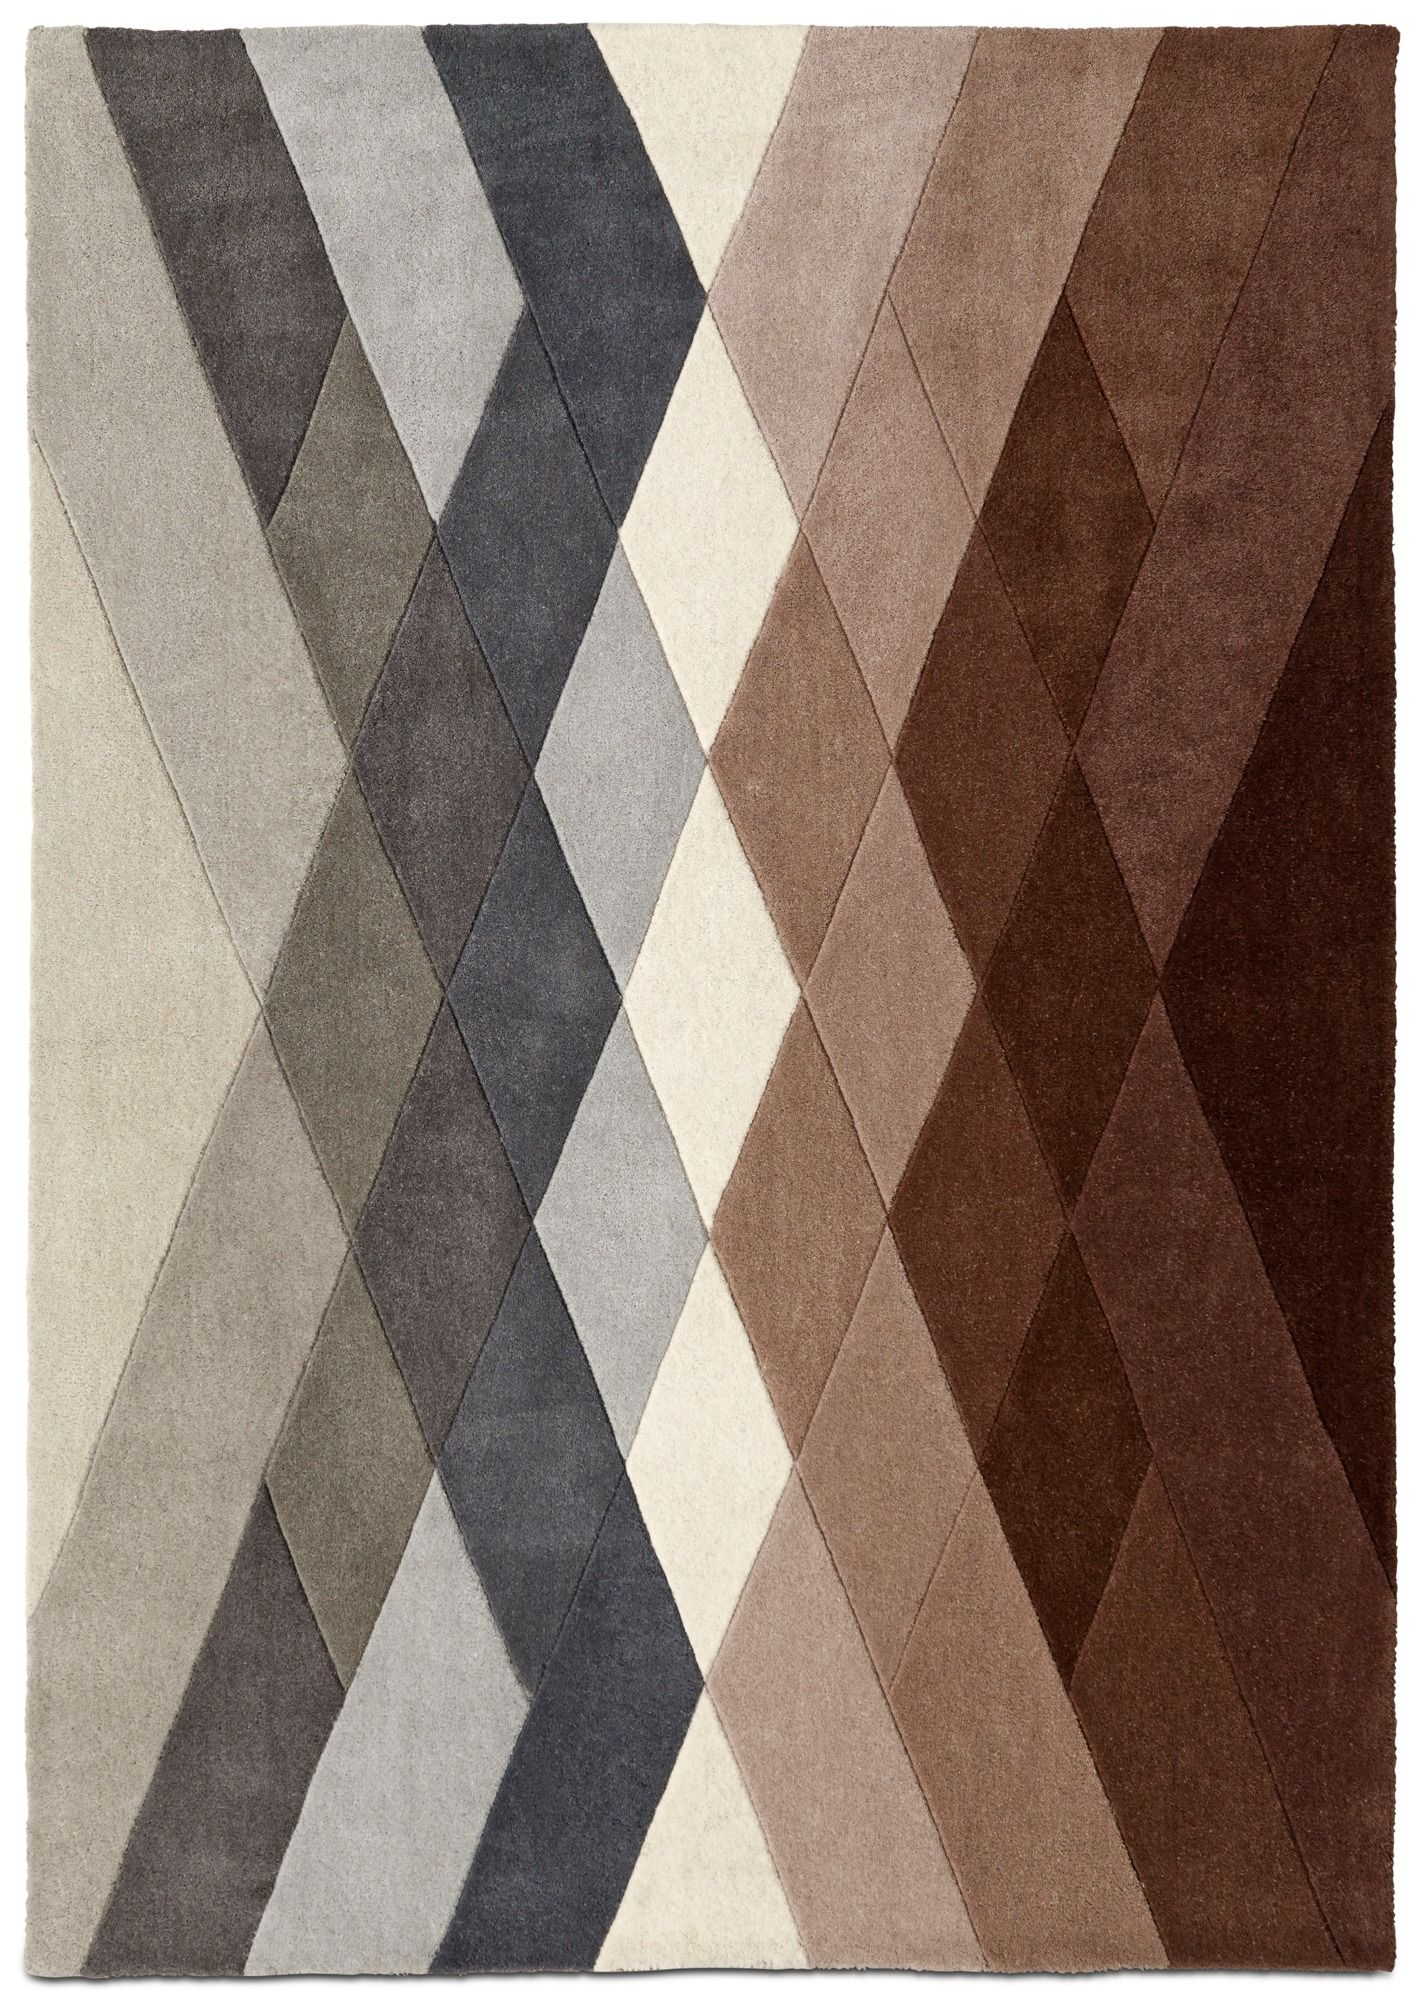 Rugs And Carpets Pin By Linlong On 面料 Rug Texture Rugs On Carpet Rugs